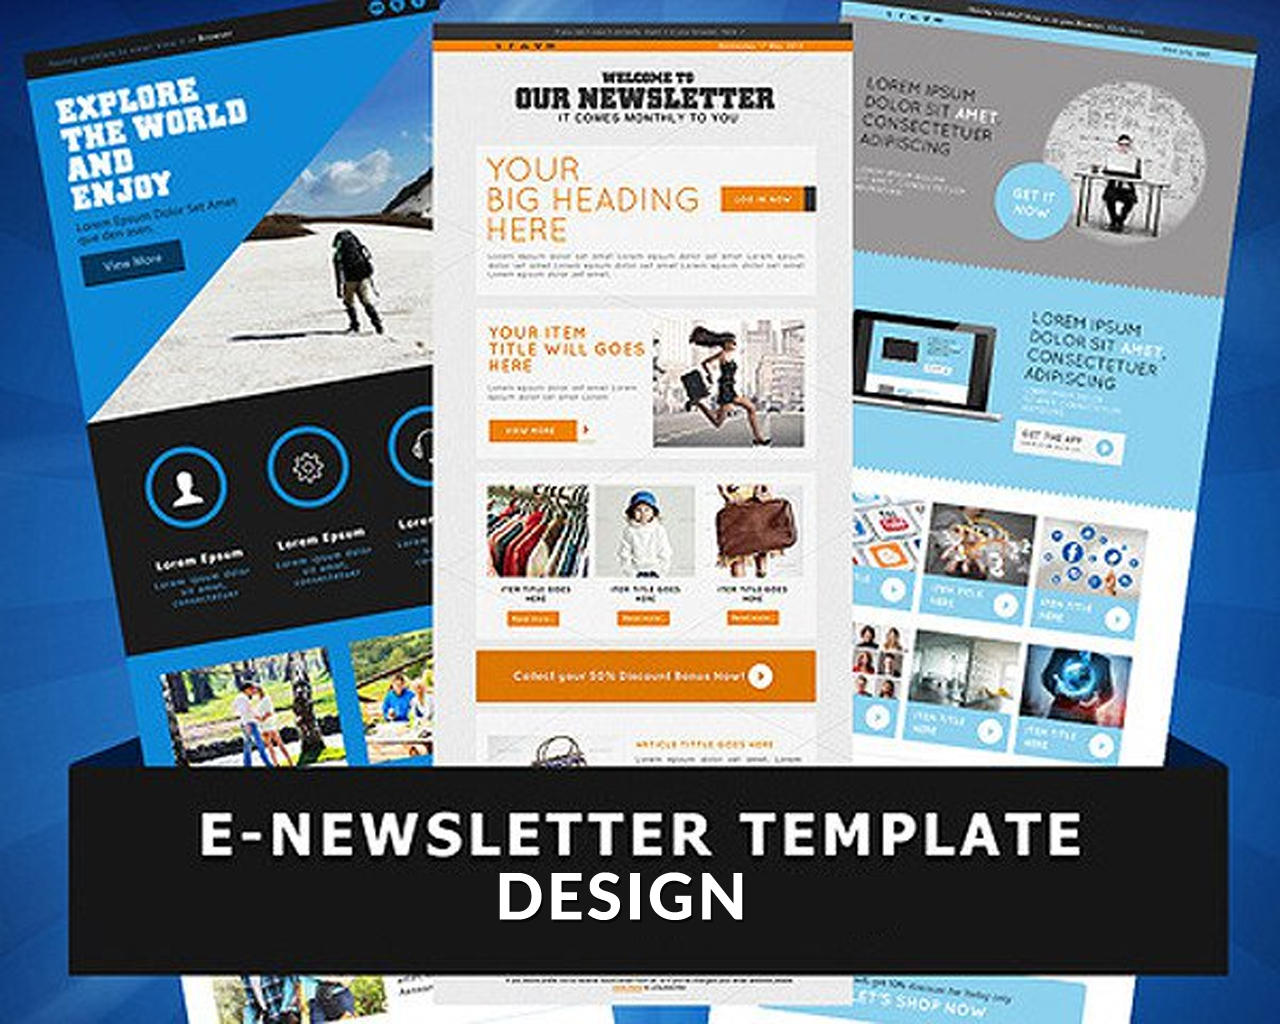 E-Newsletter Template Design by WonderArt - 98742